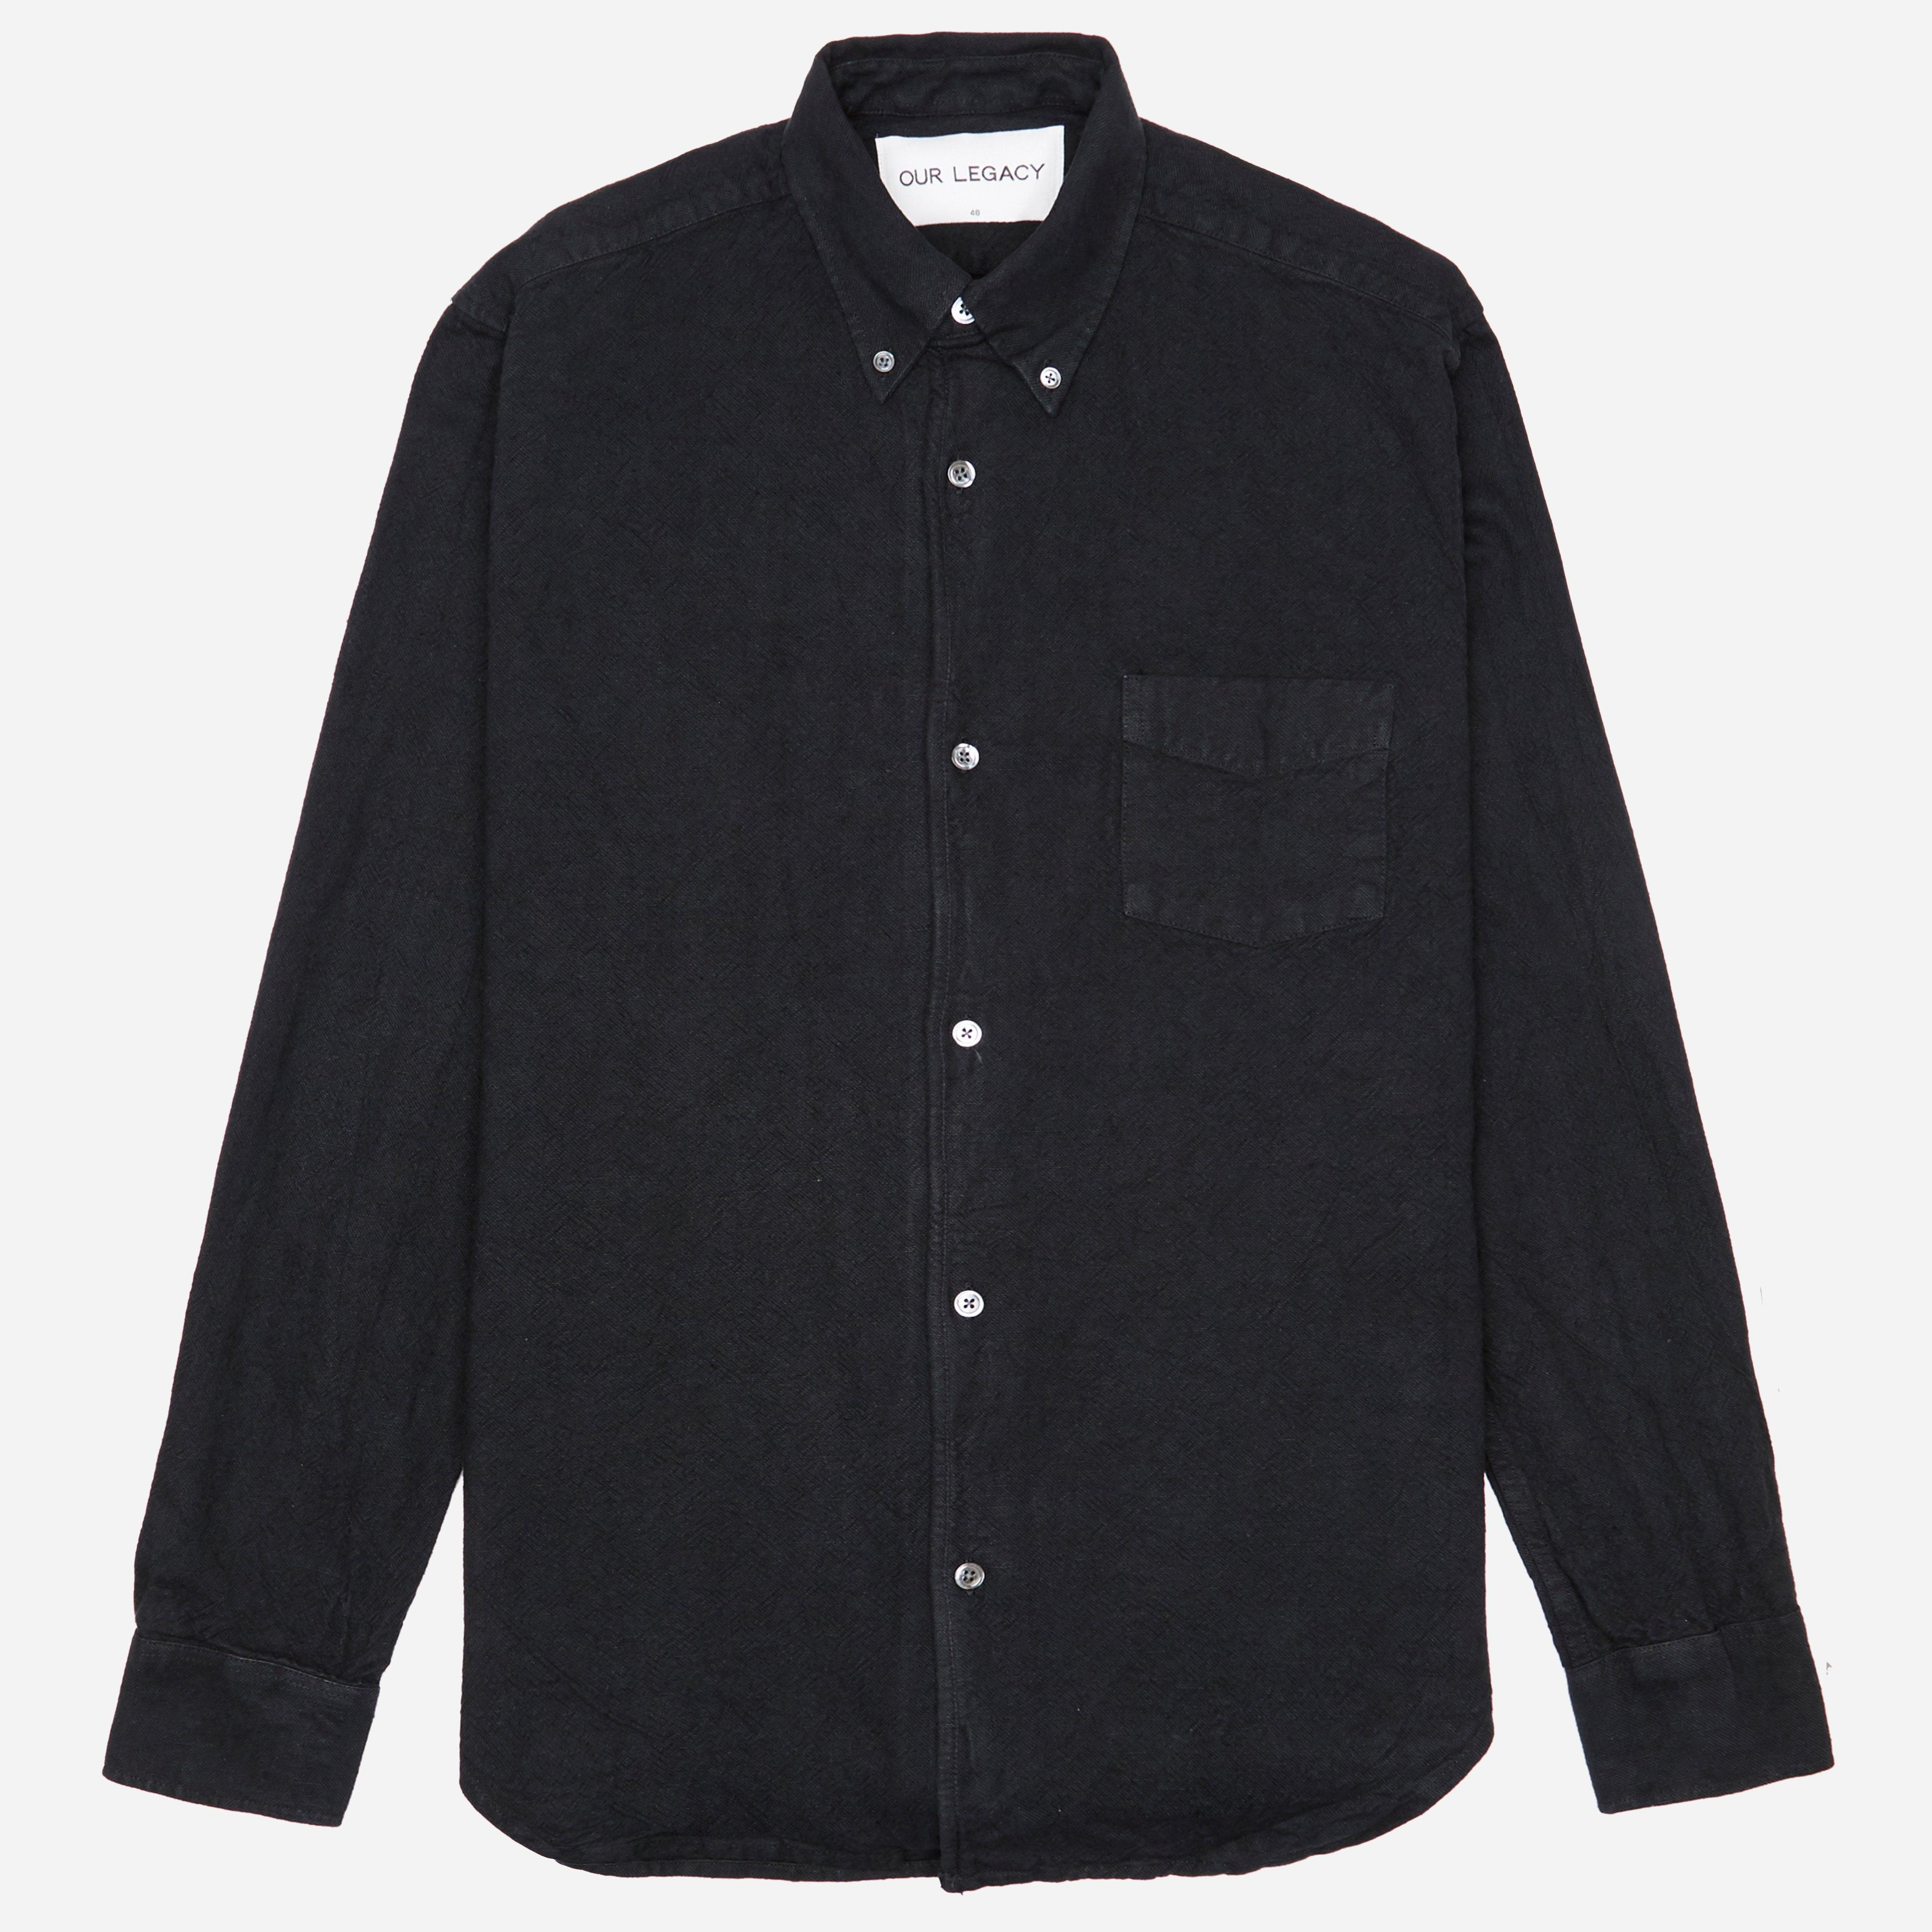 Our Legacy 1950's H.A Oxford Shirt